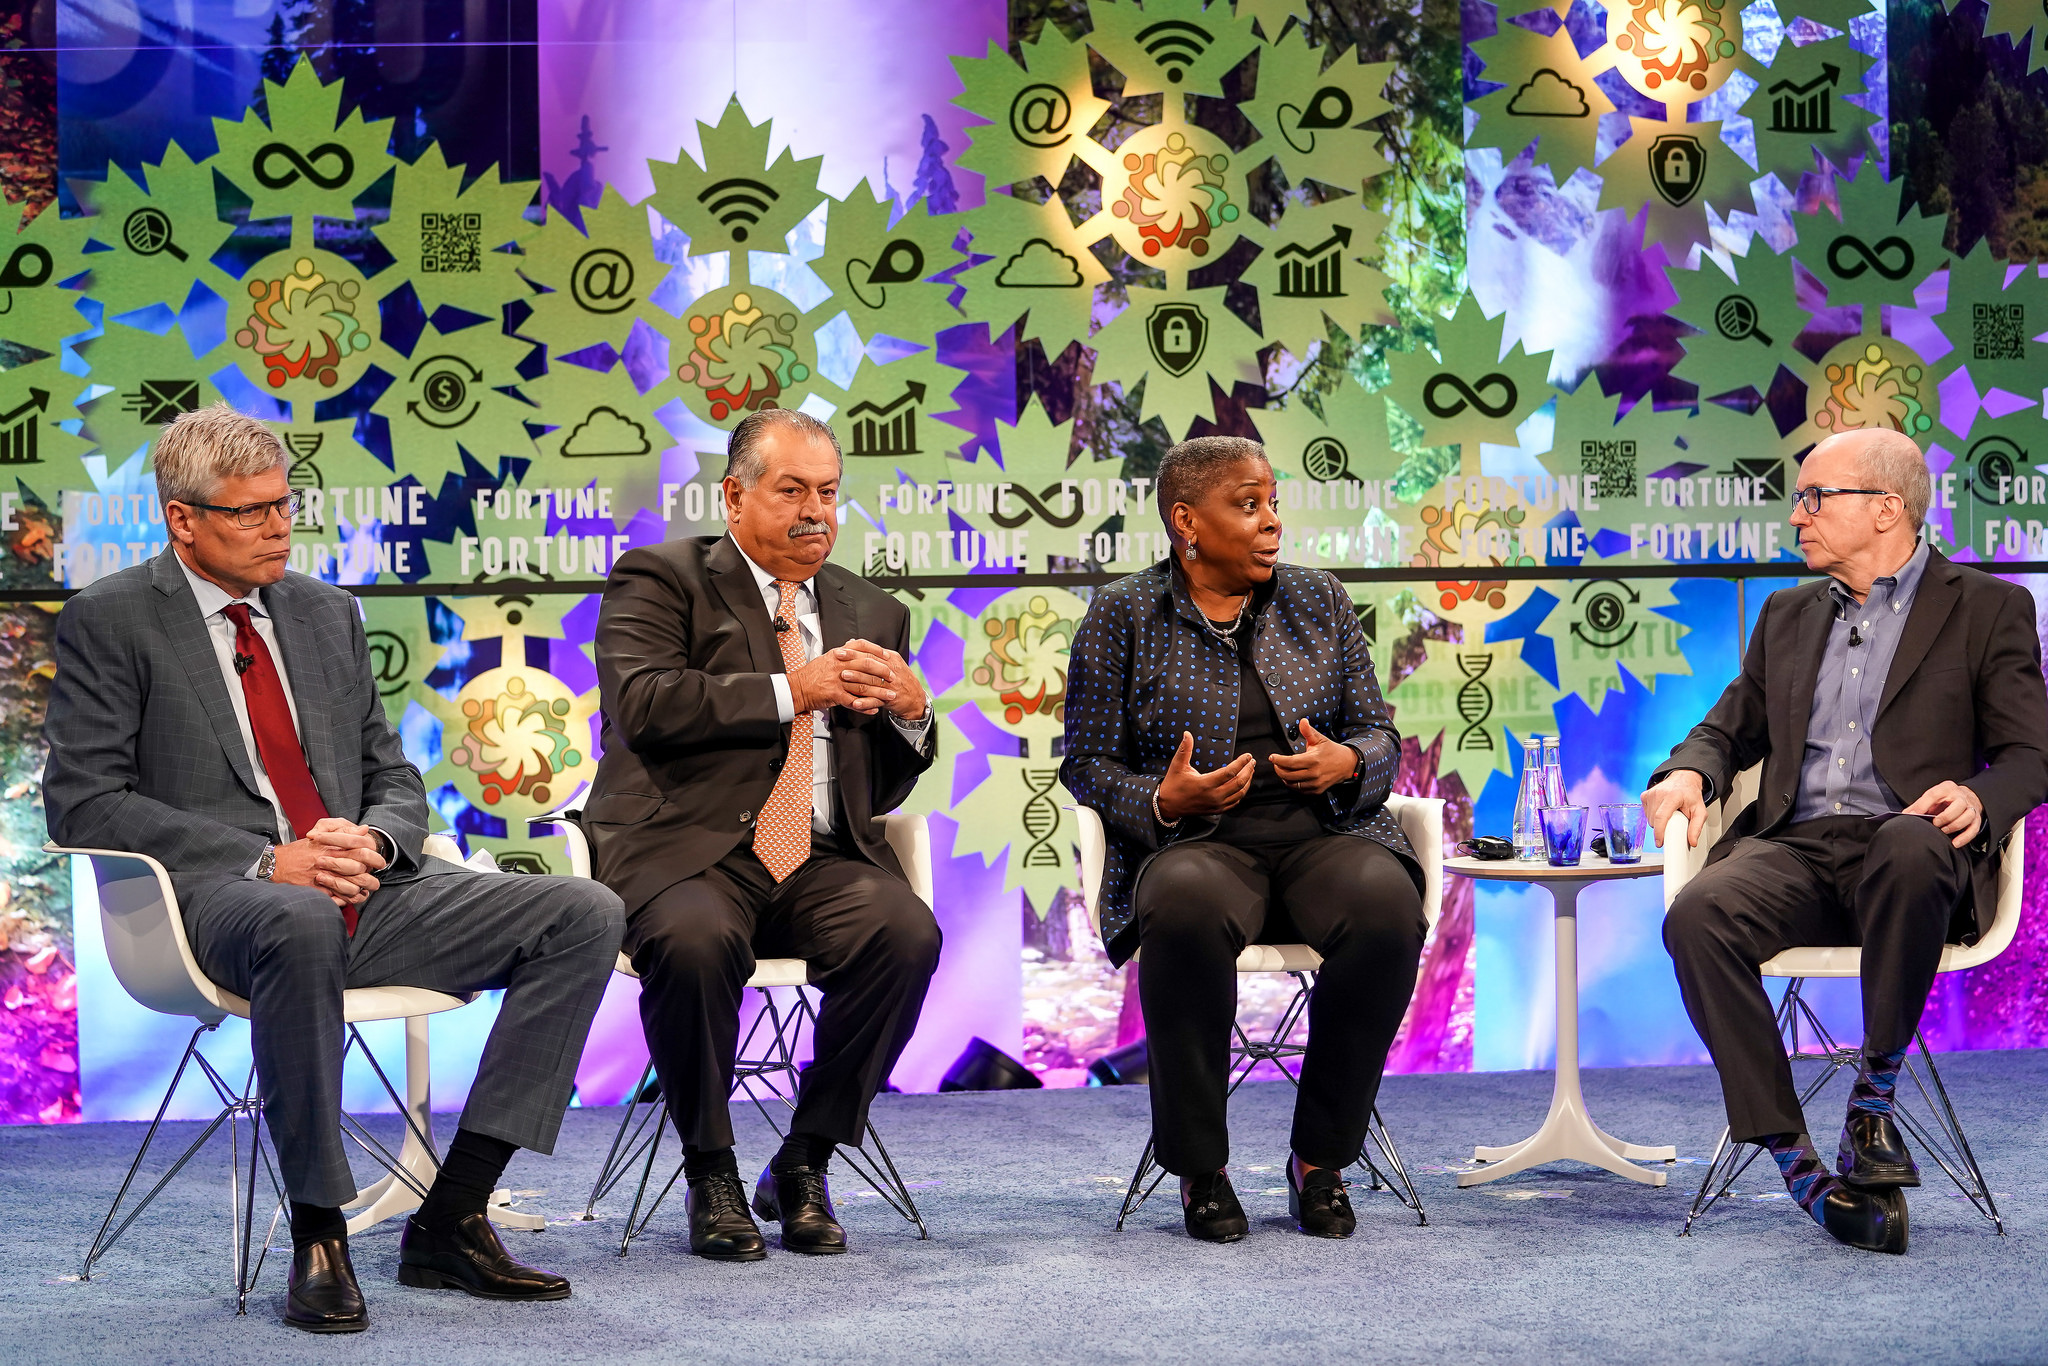 Ursula Burns, Chairwoman, VEON; Director, Uber and Diageo; Former Chairman and CEO, Xerox Corporation; Andrew Liveris, Former Chairman and CEO, Dow Chemical; Steve Mollenkopf, Chief Executive Officer, Qualcomm; Moderator: Alan Murray, Fortune. Fortune Global Forum 2018. Toronto, Canada. October 16th, 2018.